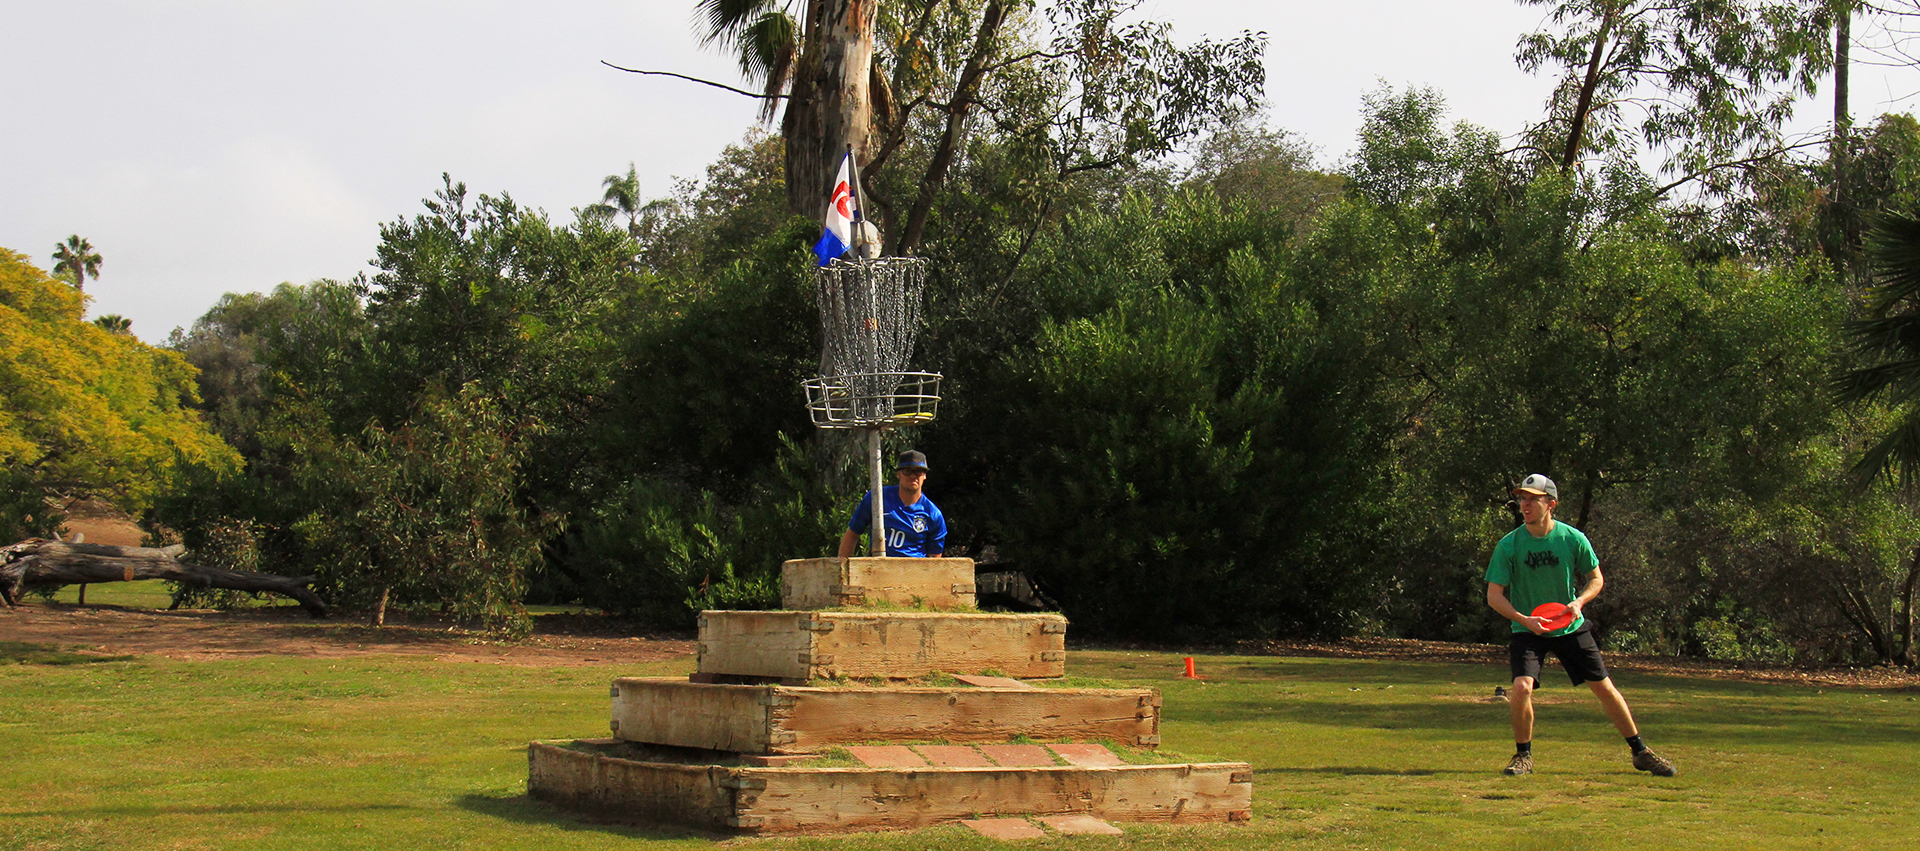 Morley Field Disc Golf